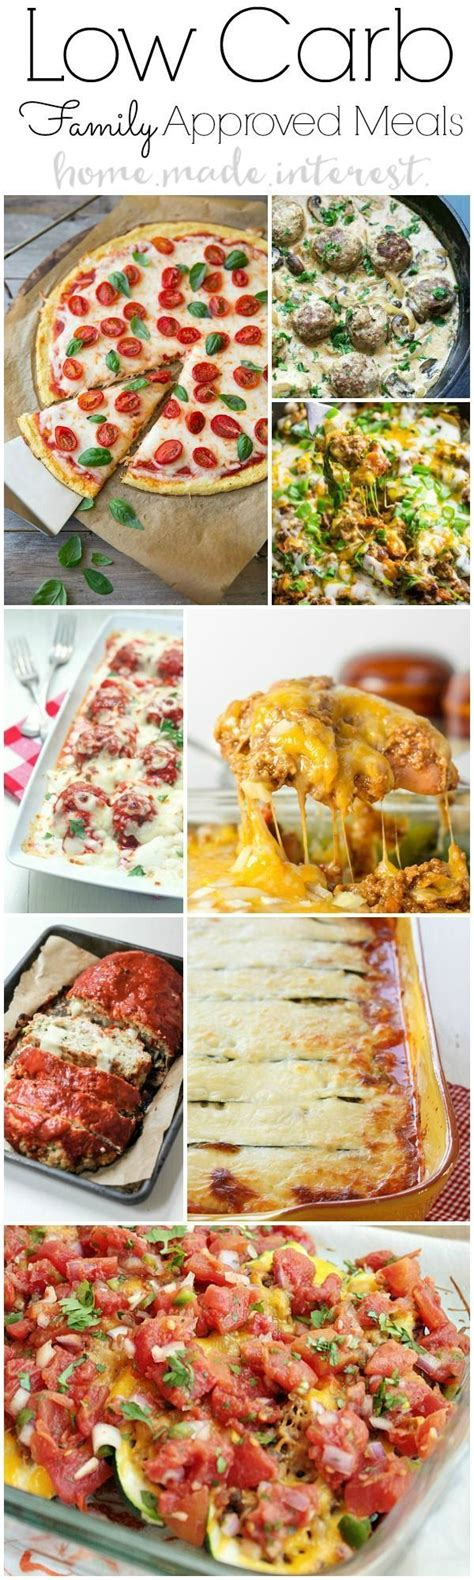 low dinner recipes low carb dinner recipes for family low carb dinner ideas kid and low carb diets